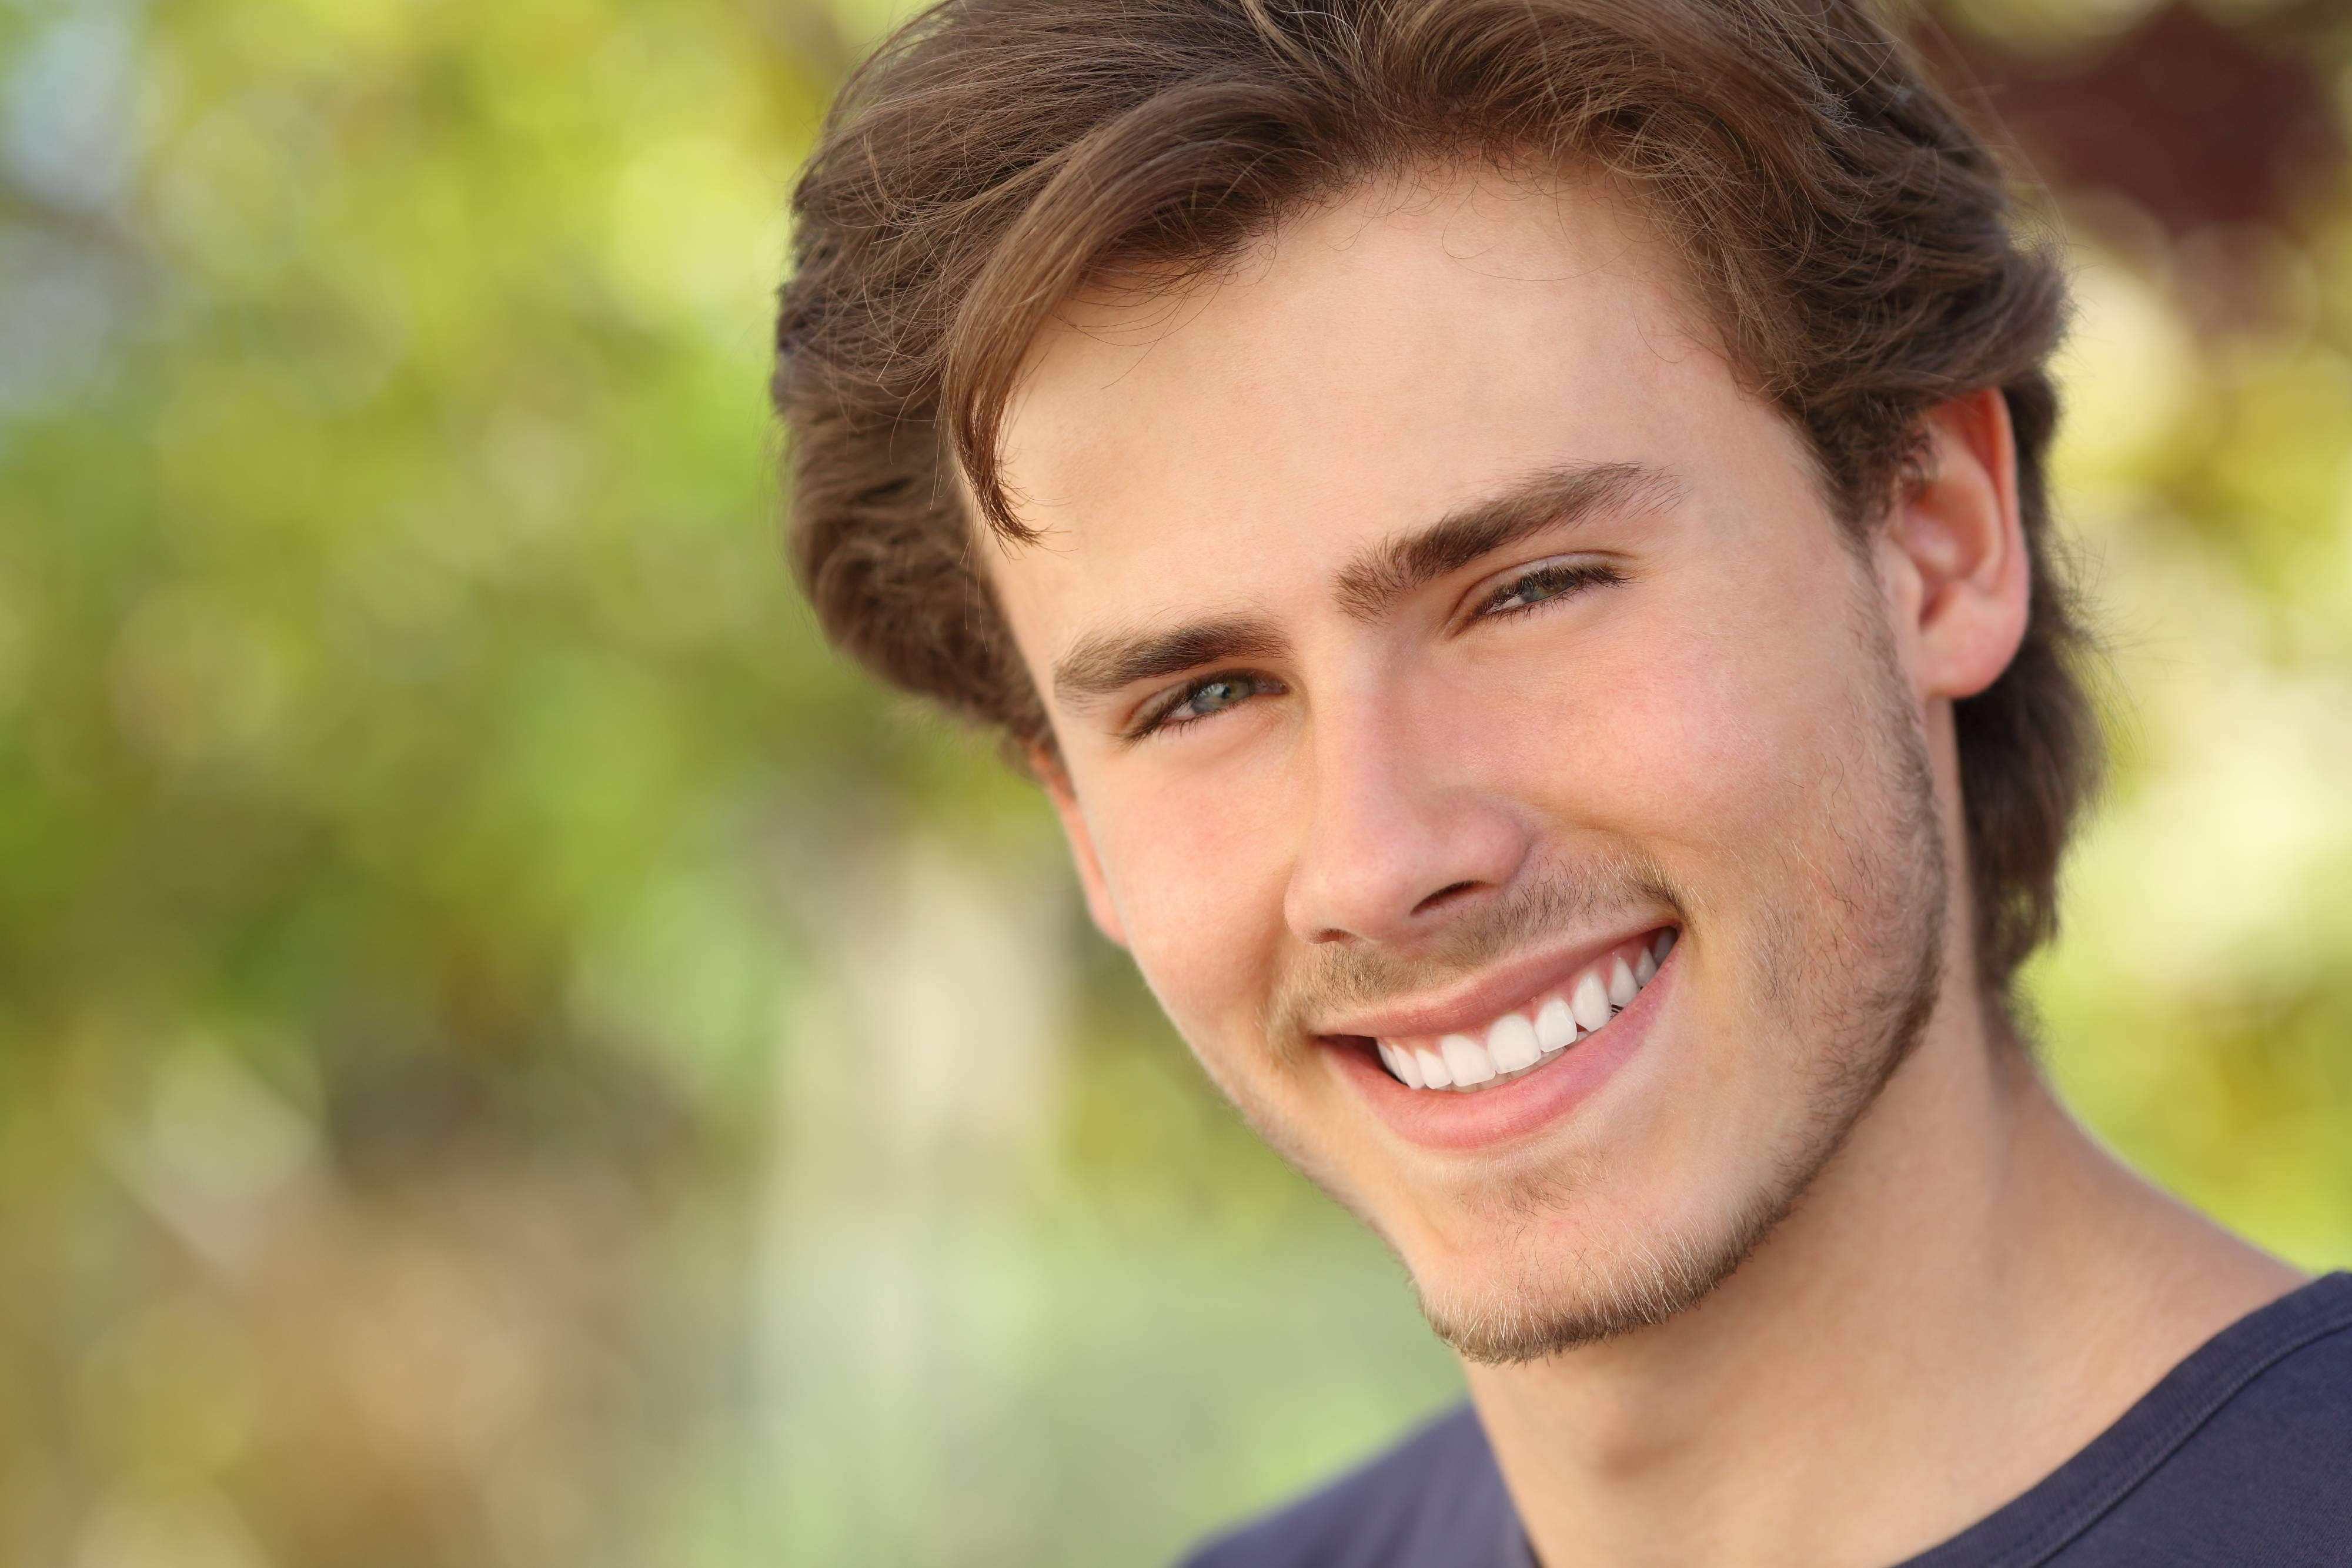 Top Benefits of Professional Teeth Whitening